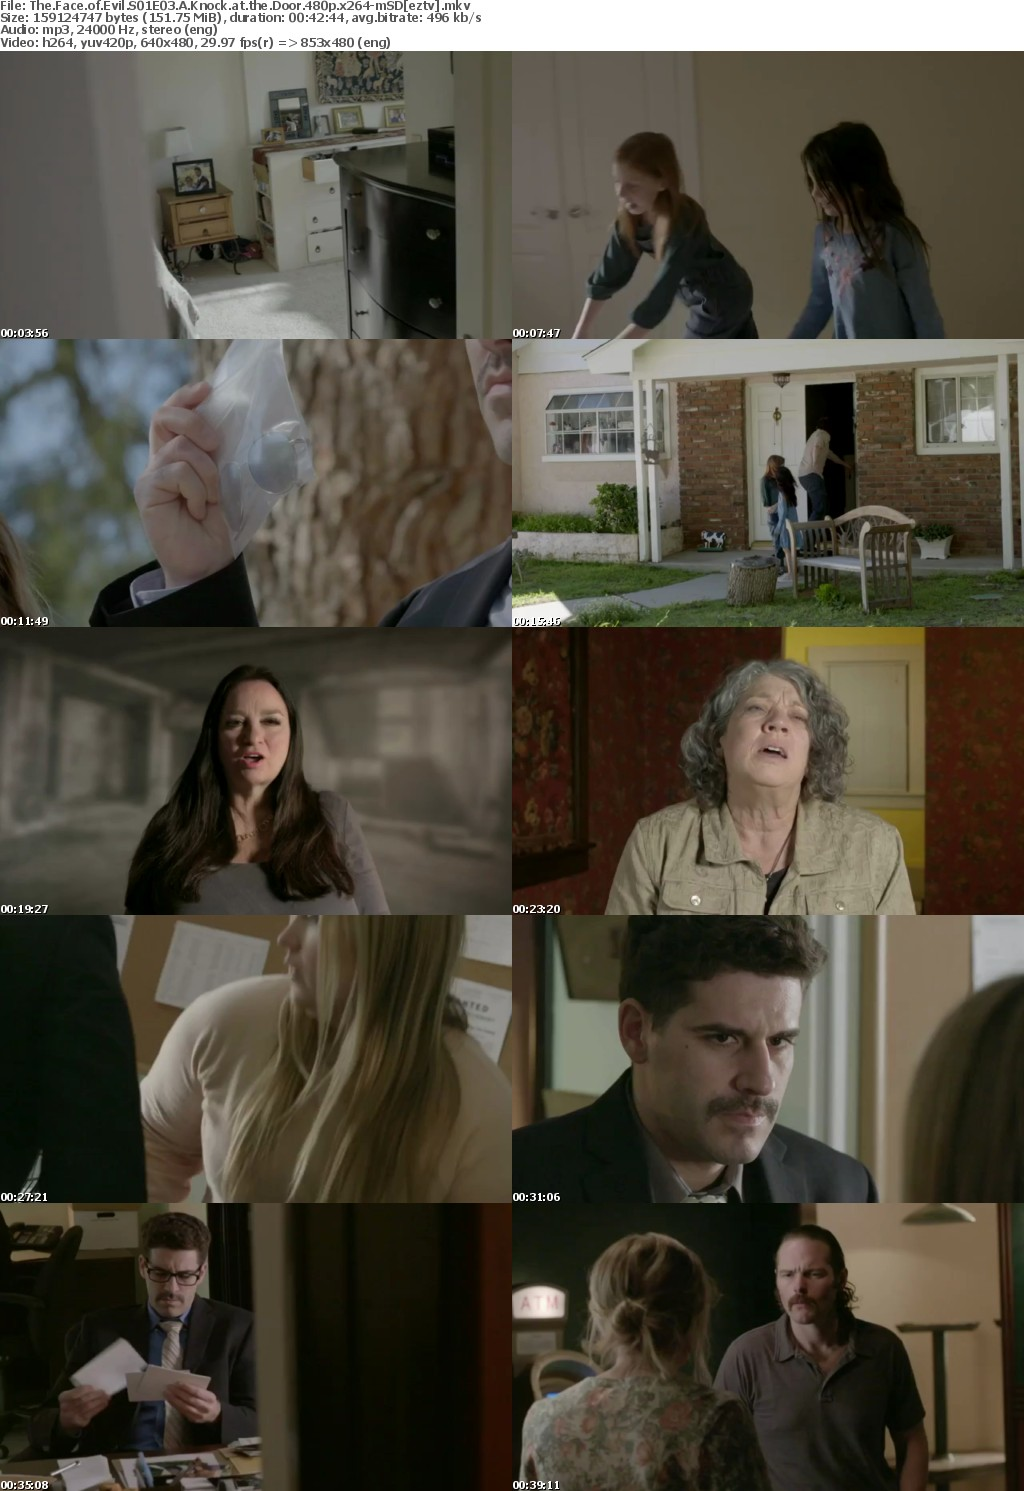 The Face of Evil S01E03 A Knock at the Door 480p x264-mSD